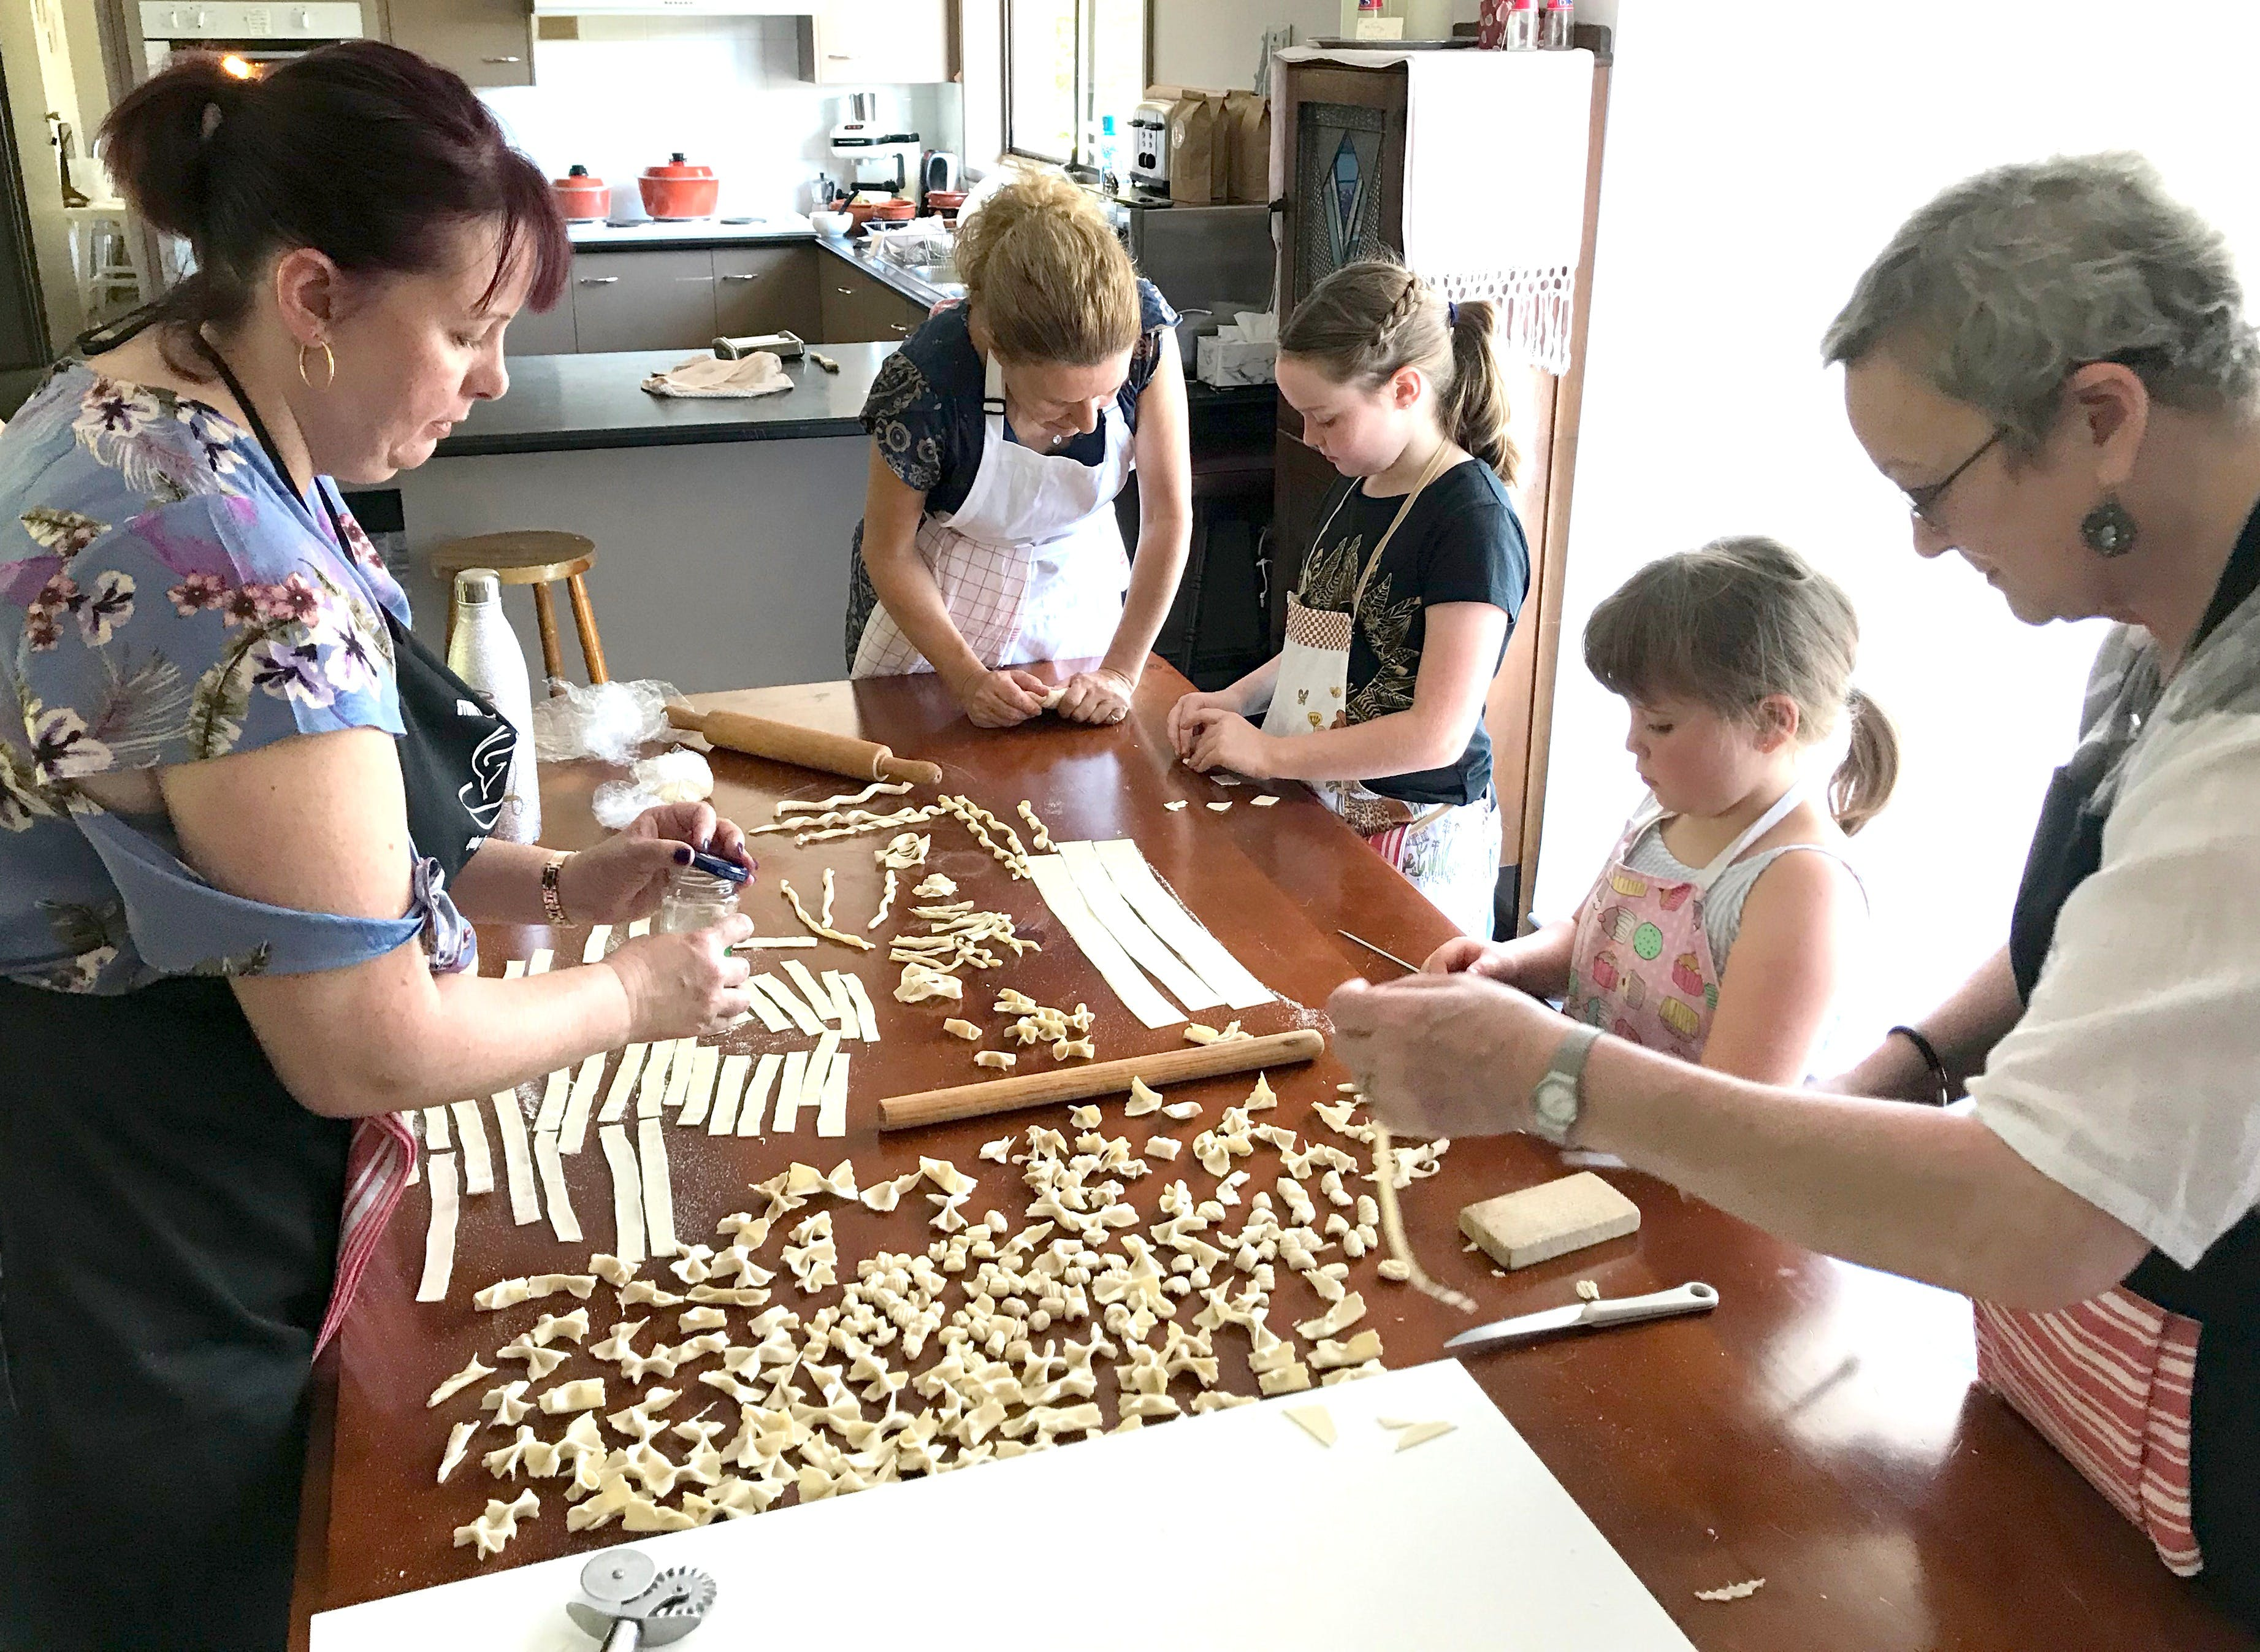 Kids Pasta Making Class - hands on fun at your house - Accommodation NSW